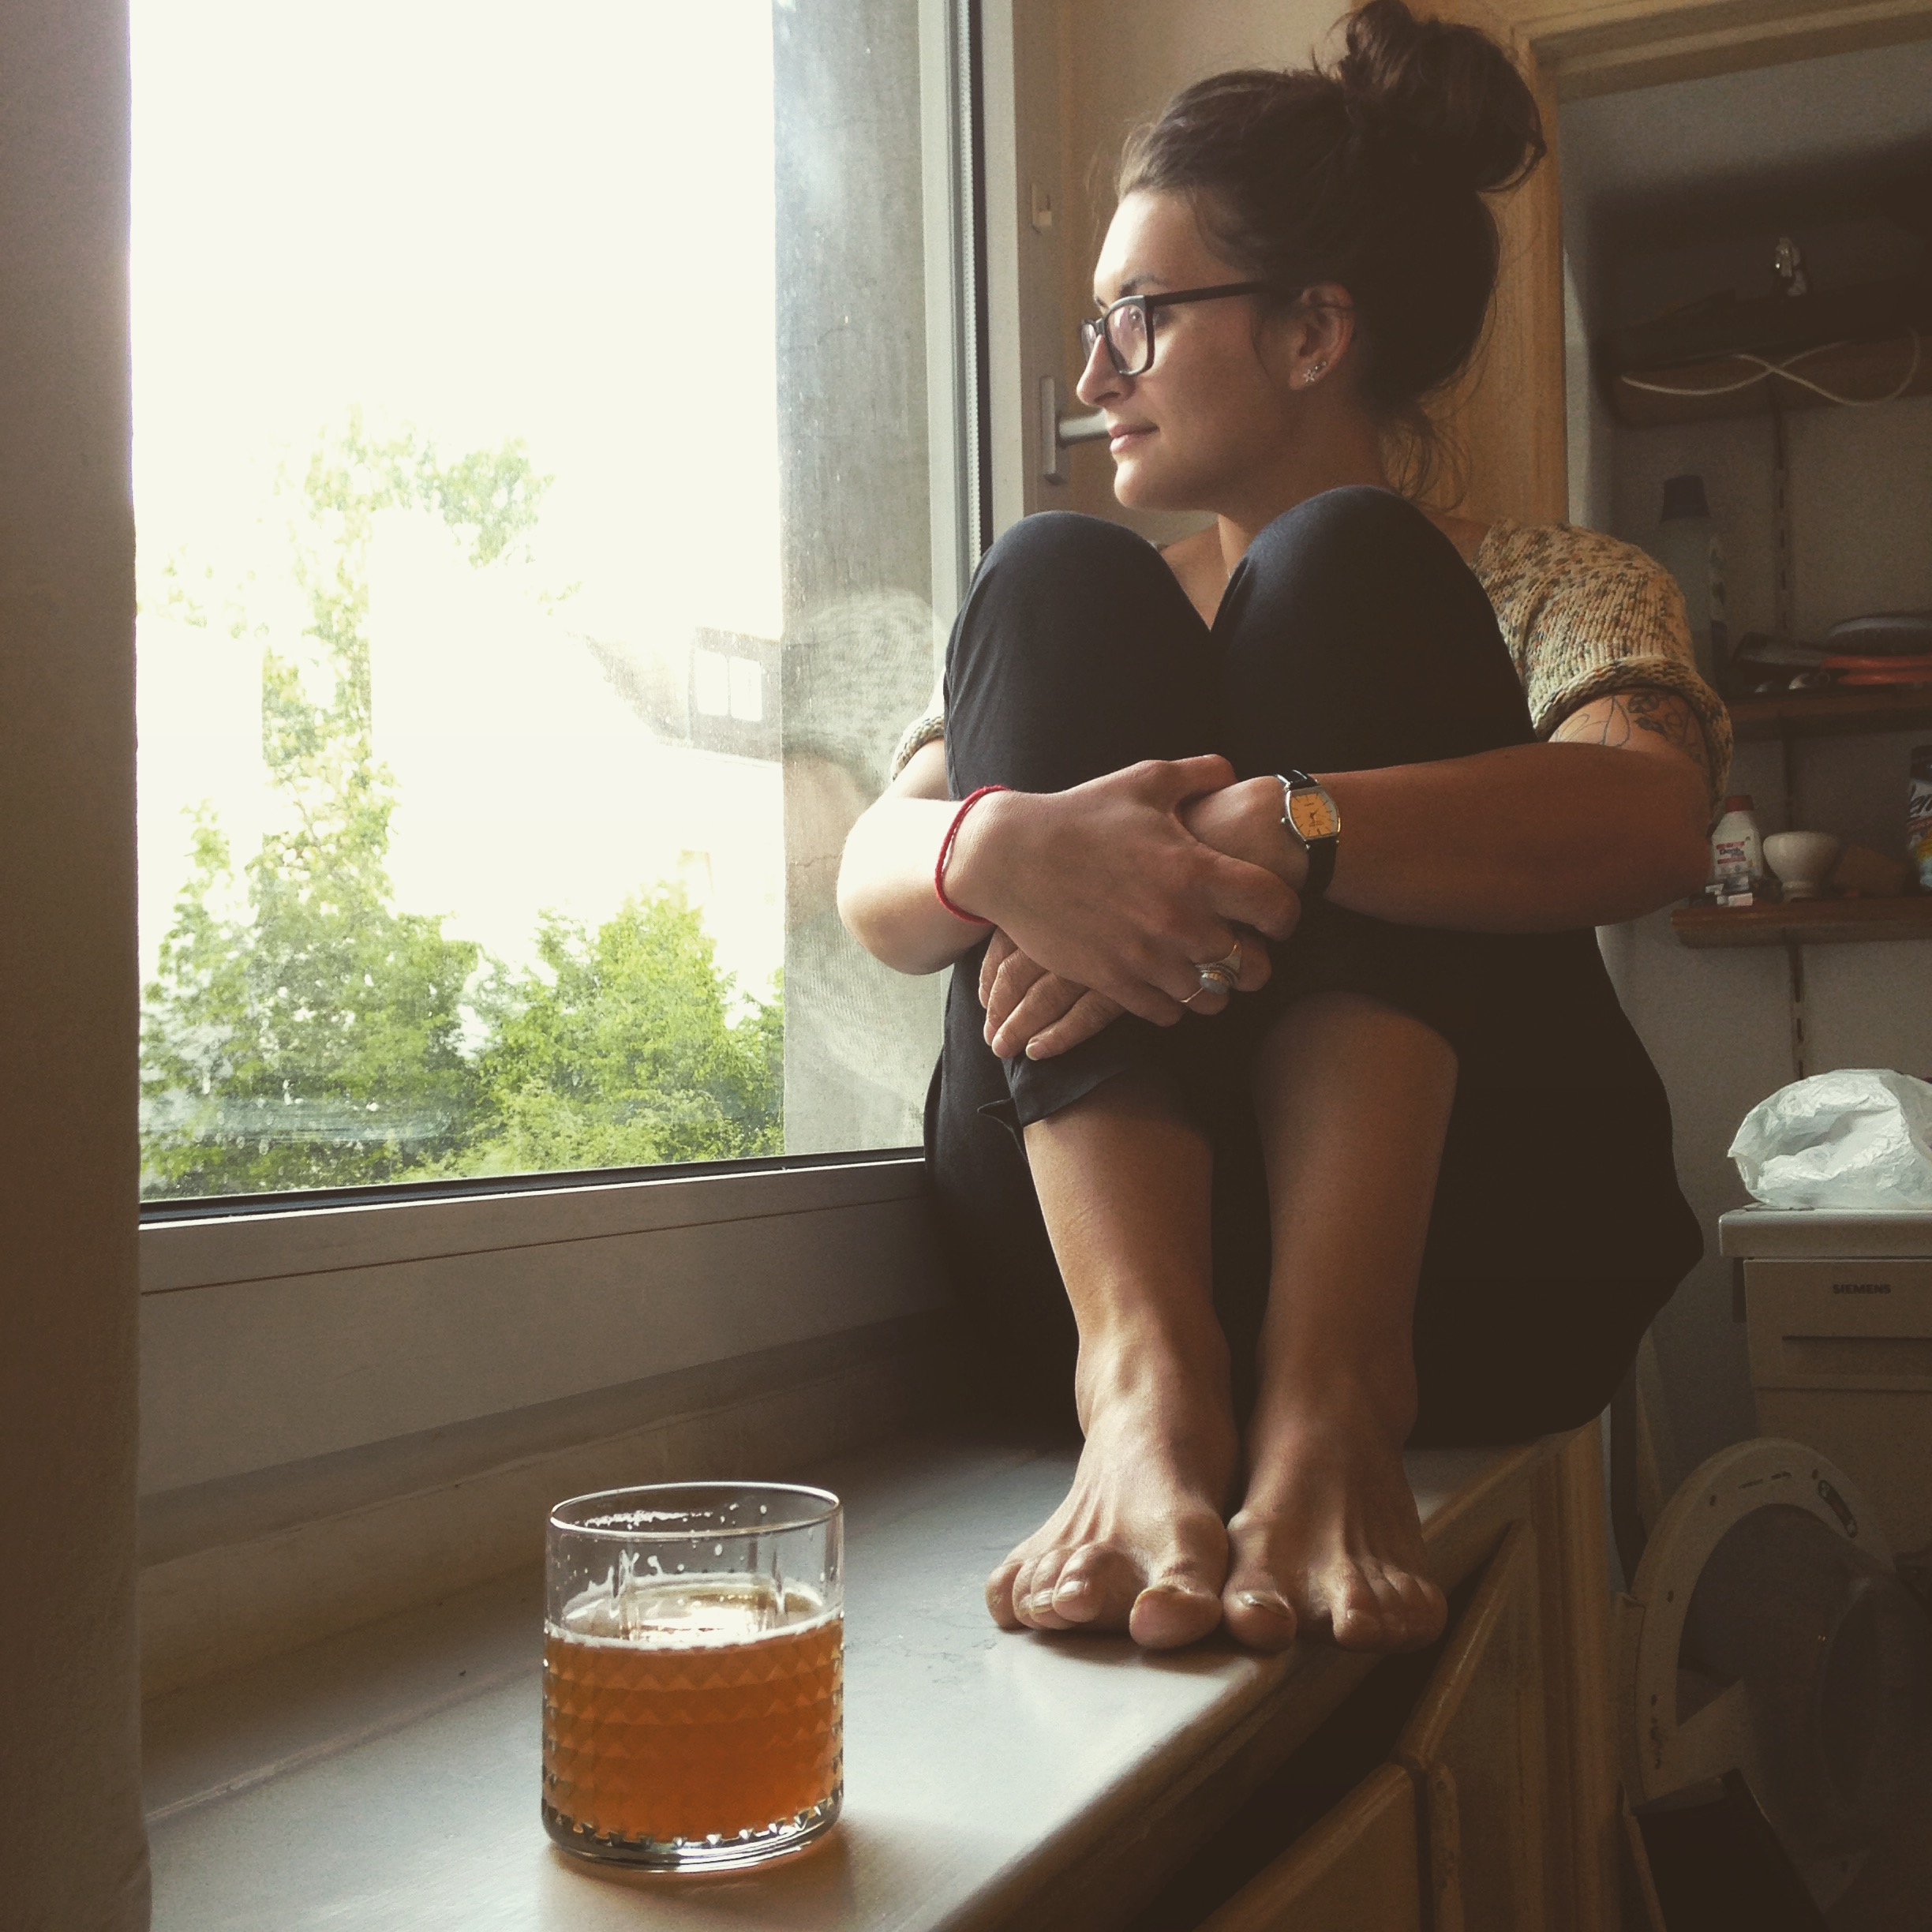 Sophi enjoying a beer at Ant and Laura's beautiful flat